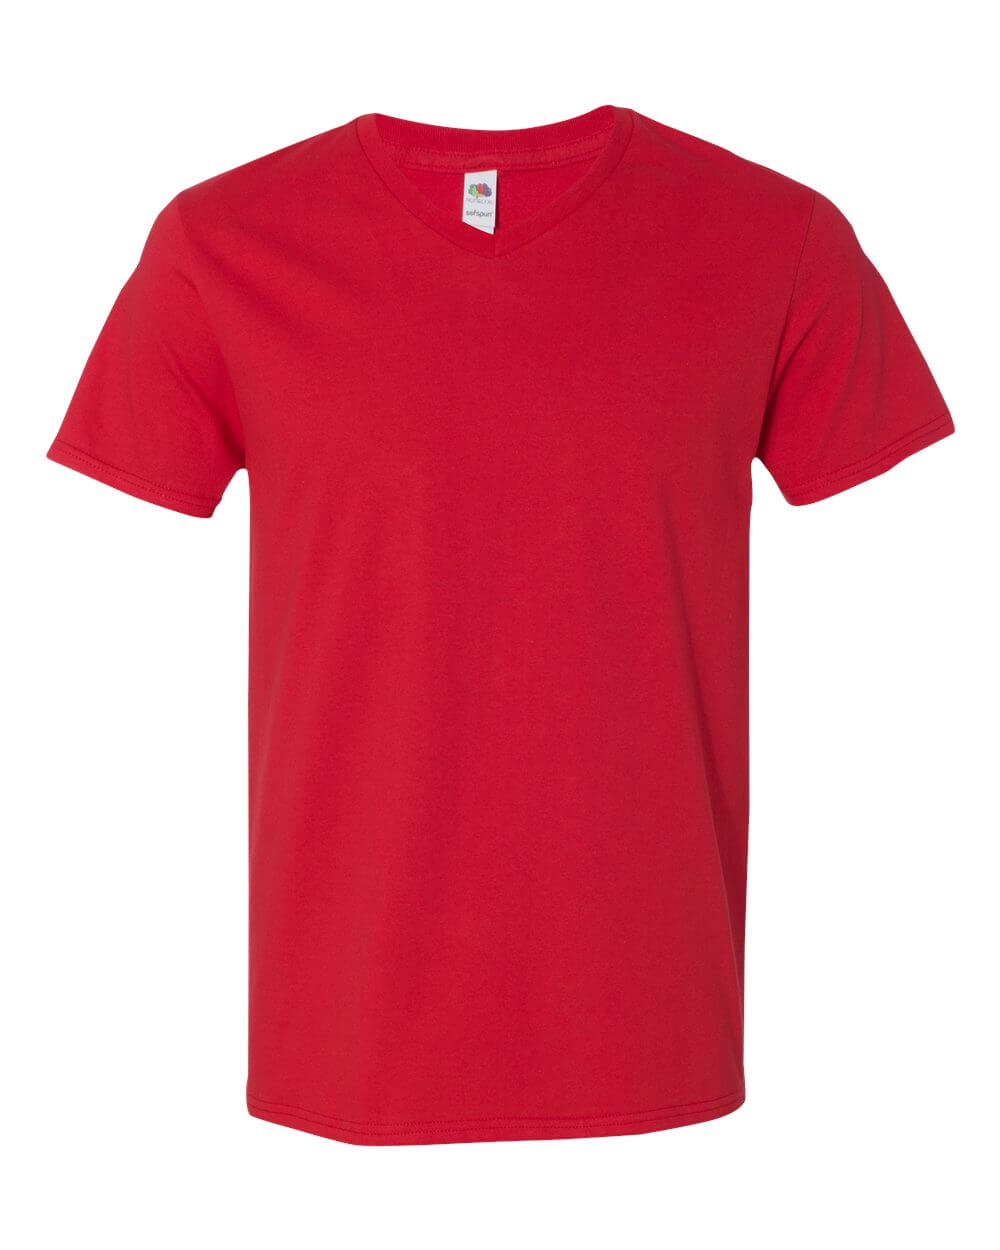 Fruit of the Loom Sofspun V Neck Red Custom T Shirts